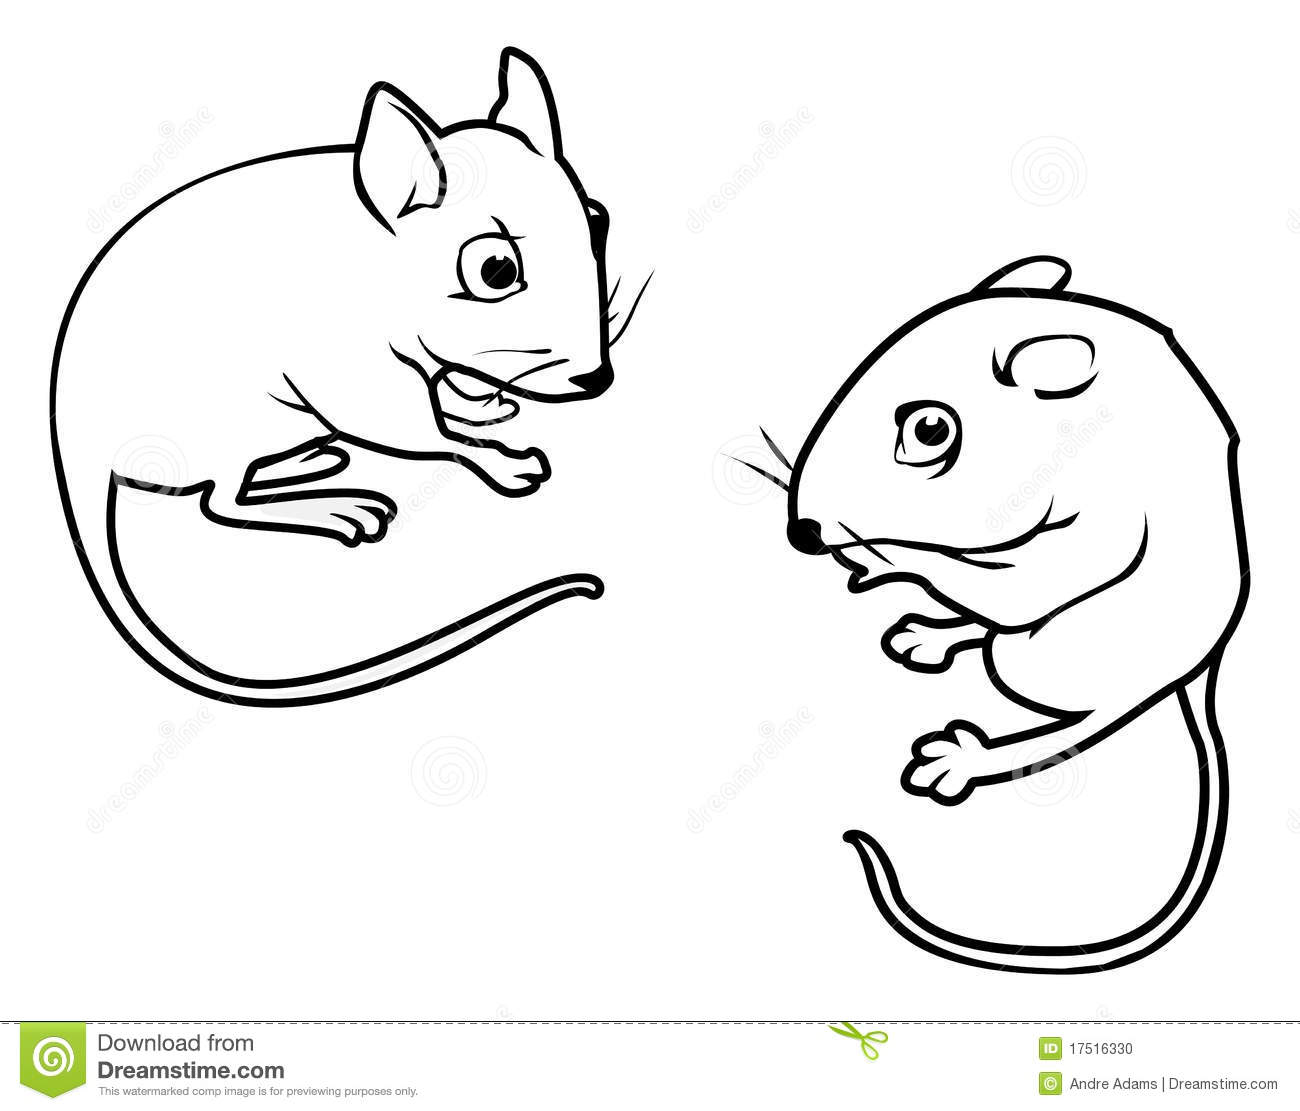 Mice outlines stock vector. Image of tiny, black, mammal